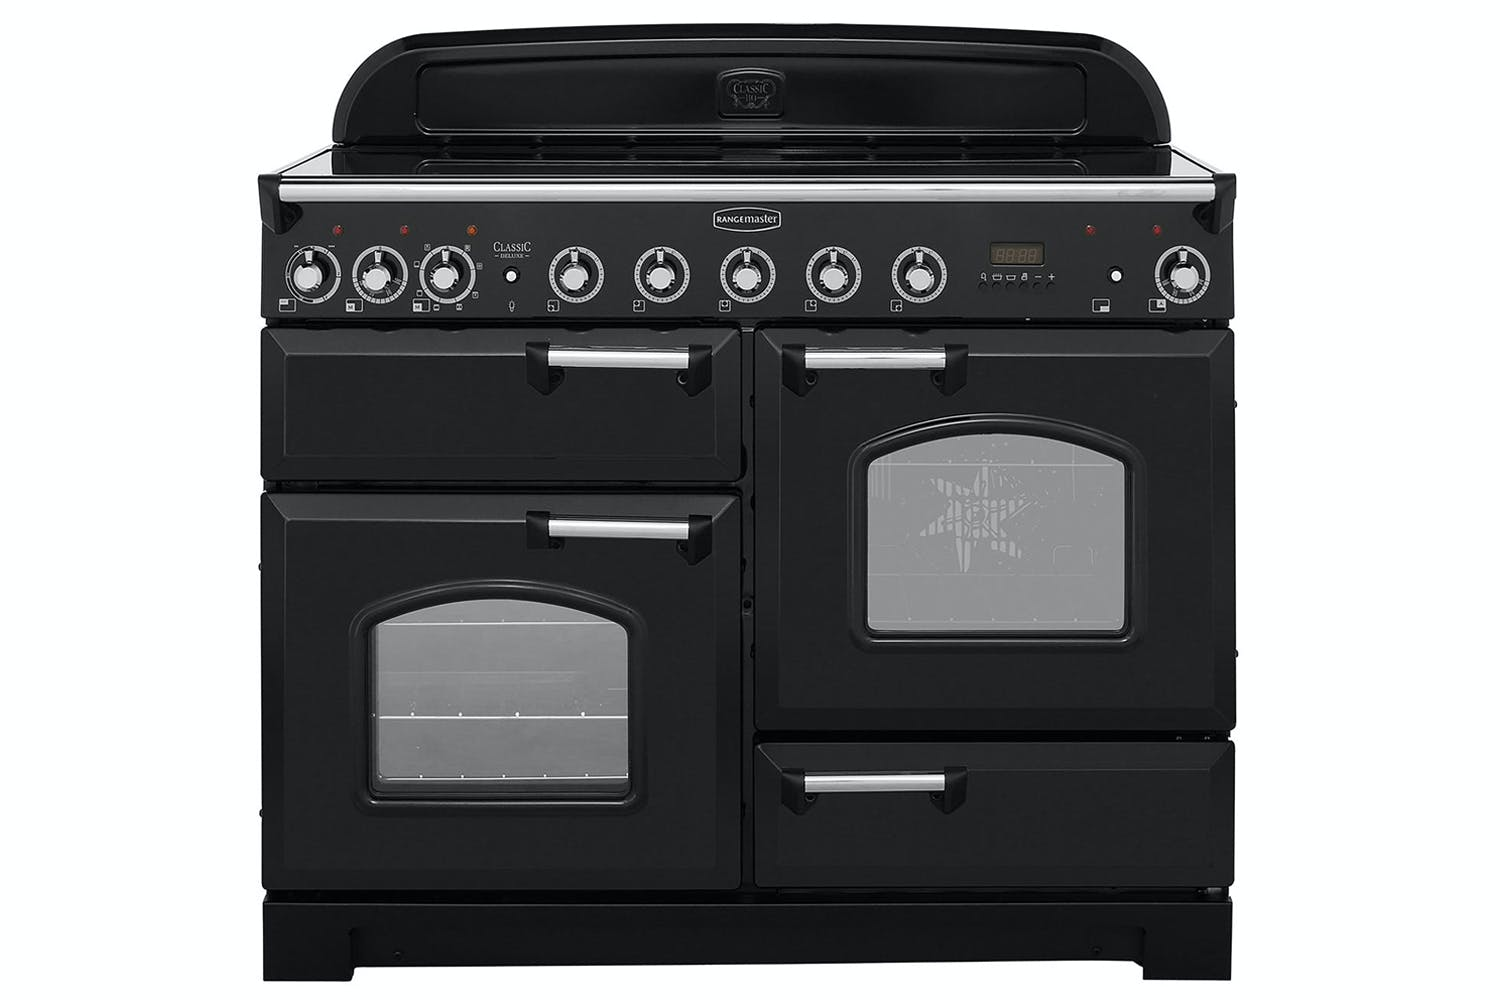 Rangemaster 110cm Classic Deluxe Induction Range Cooker Cdl110eibl Simple Heater Circuit Hot Plate C Black